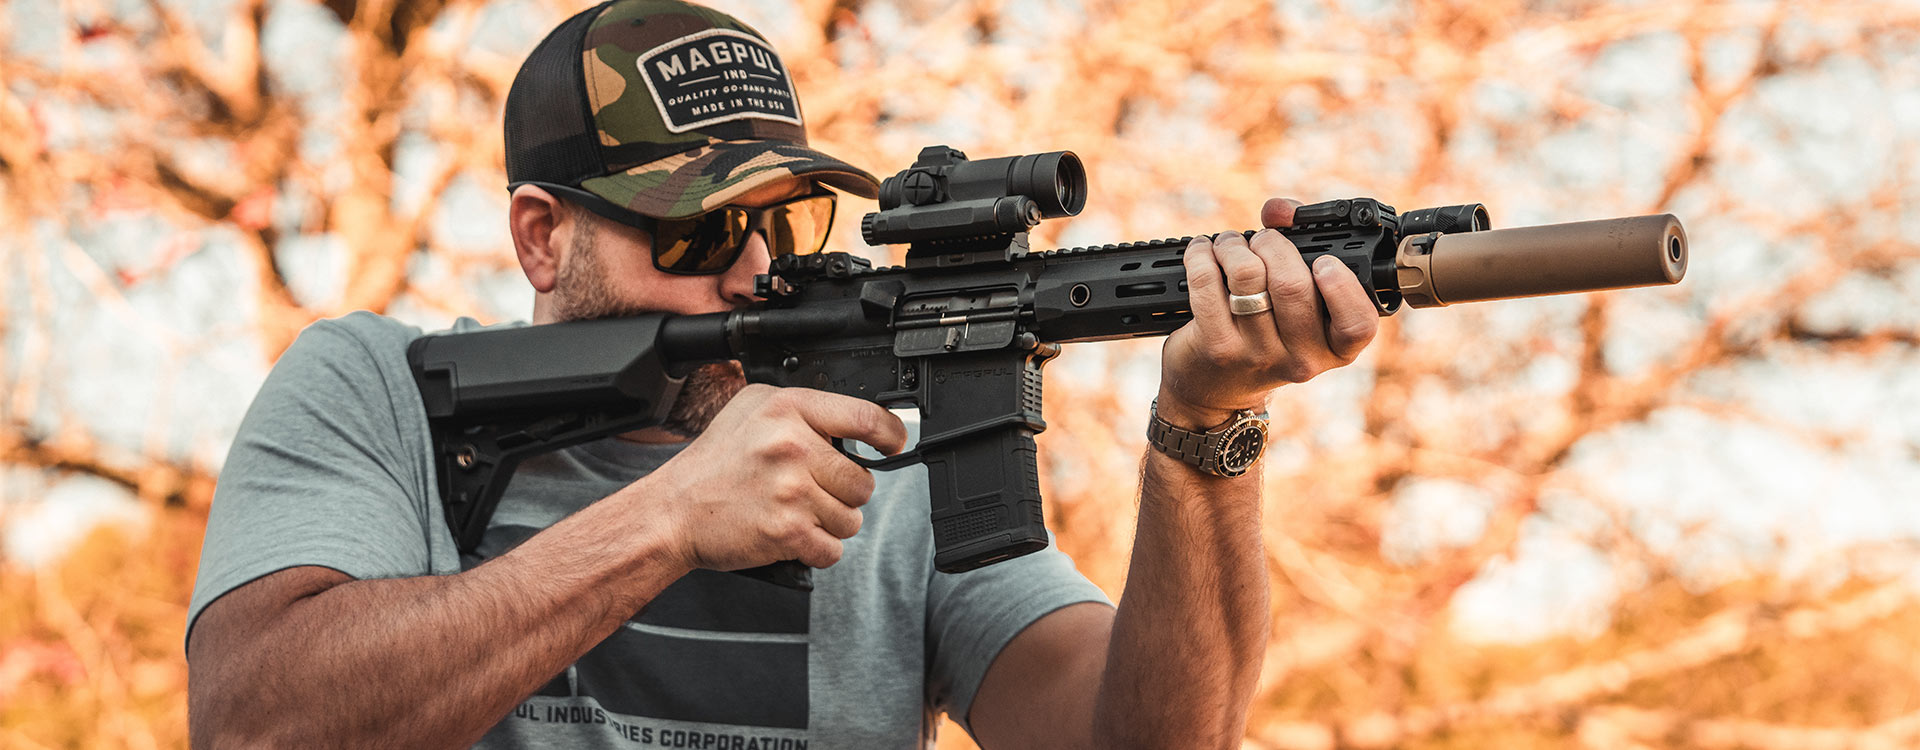 Magpul PMAG 20 AR 300 B GEN M3 in AR15 being shot by a man outdoors wearing a Magpul Hat and Eyewear